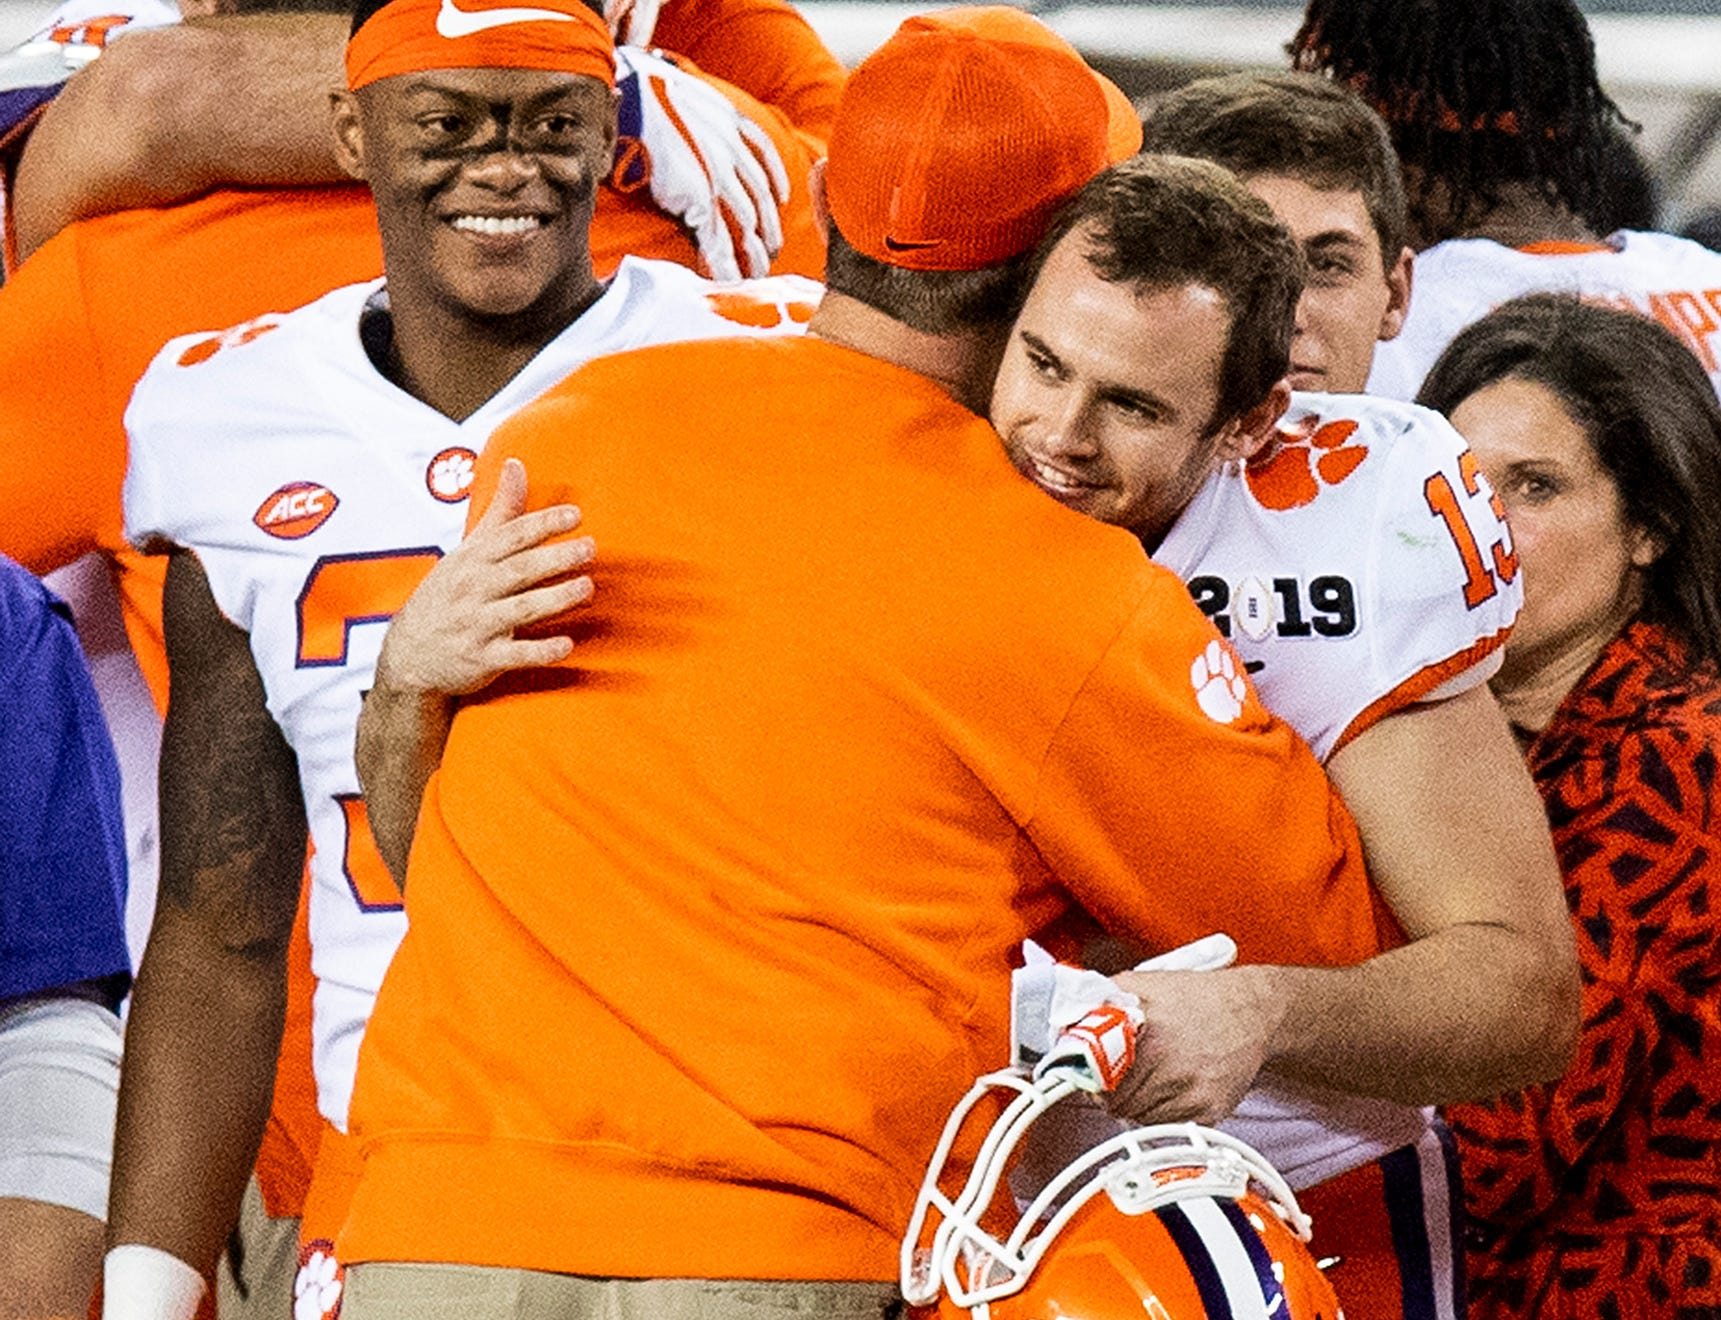 Clemson head coach Dabo Swinney hugs Clemson wide receiver Hunter Renfrow (13) as time runs out in their win over Alabama in the College Football Playoff National Championship game at Levi's Stadium in Santa Clara, Ca., on Monday January 7, 2019.